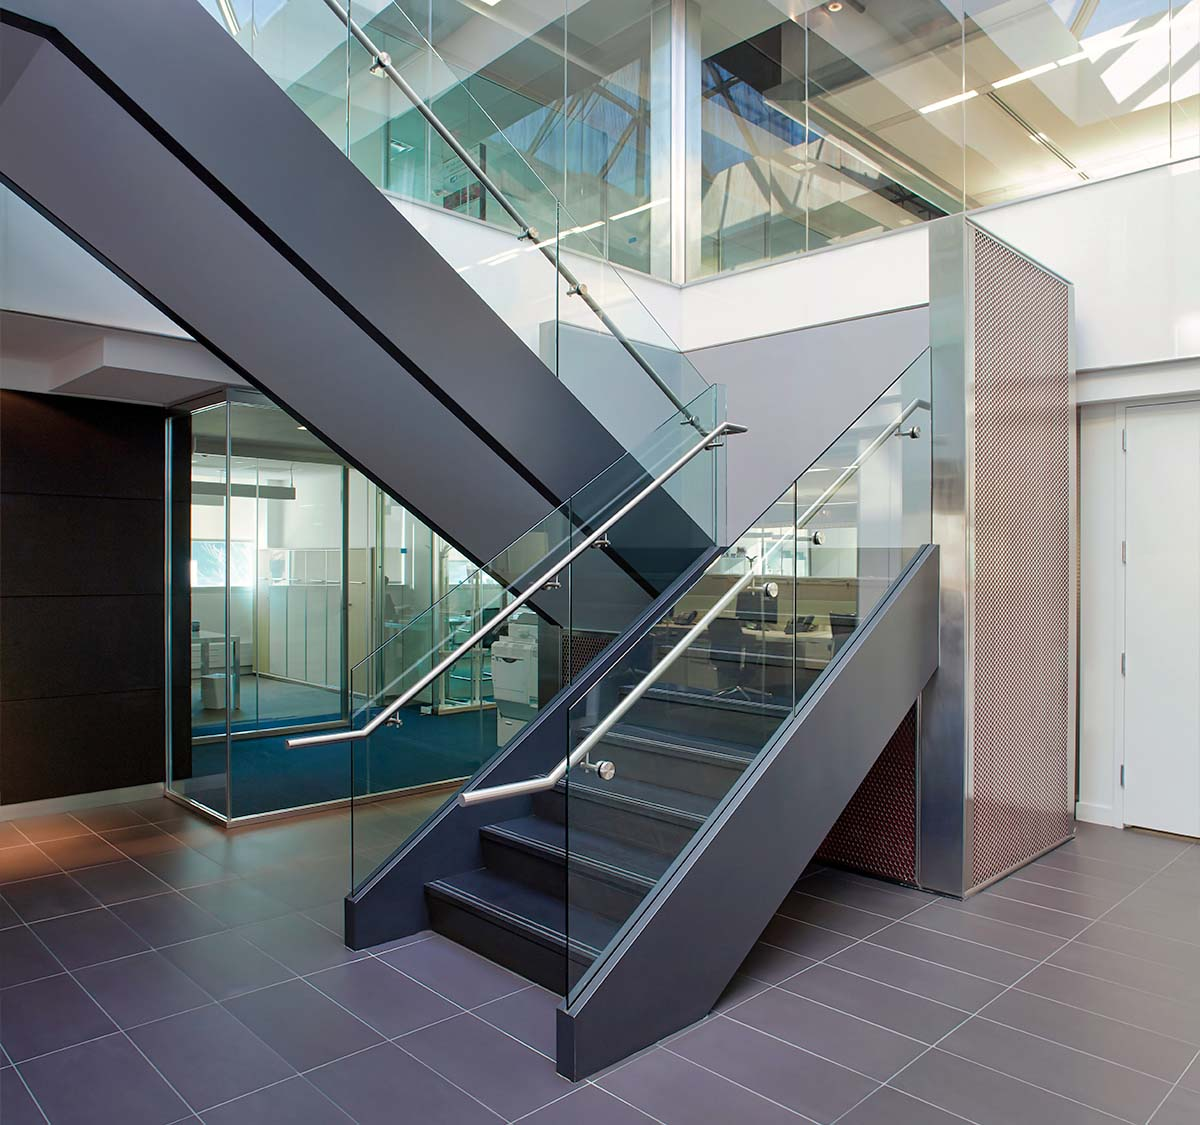 After: The staircase post-construction at Luxottica eyewear's Long Island headquarters built on Harbor Park Drive in Port Washington, New York by J.T. Magen & Company Inc.